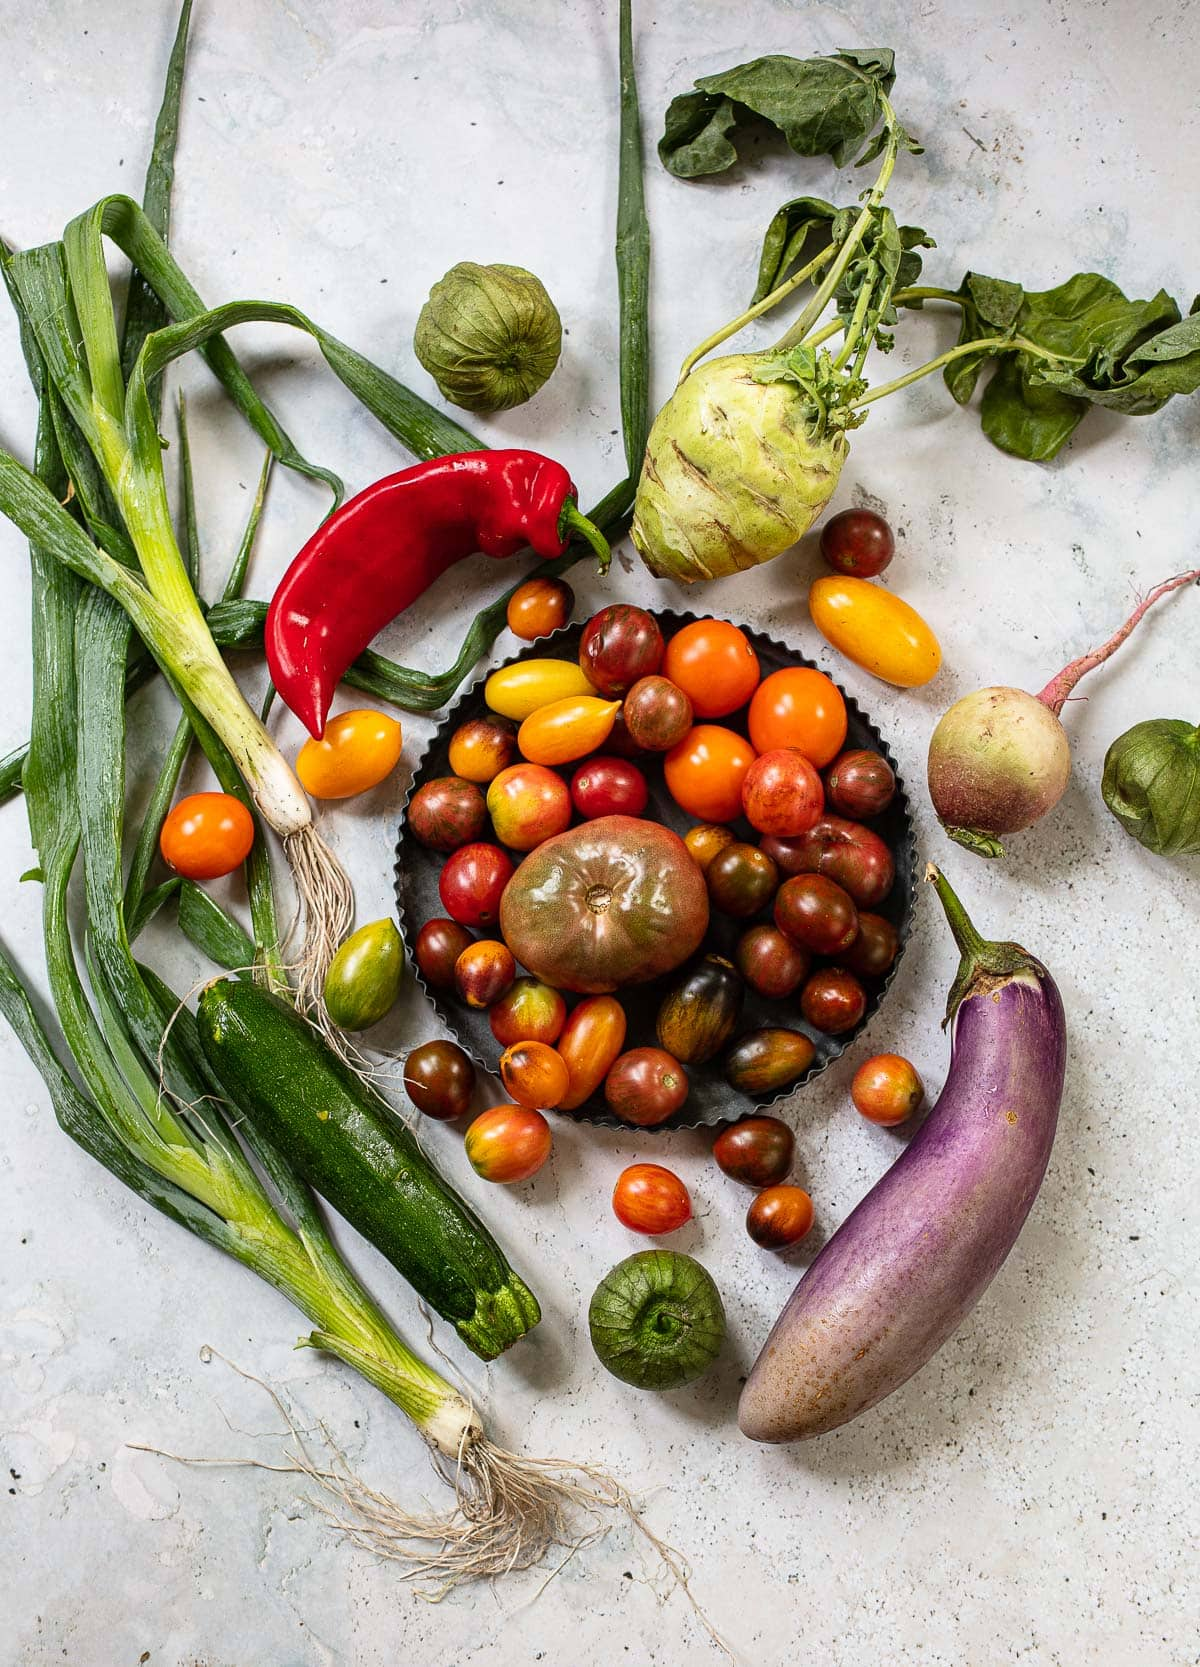 Summer vegetables: Multi-colored tomatoes, zucchini, peppers, onions, greens